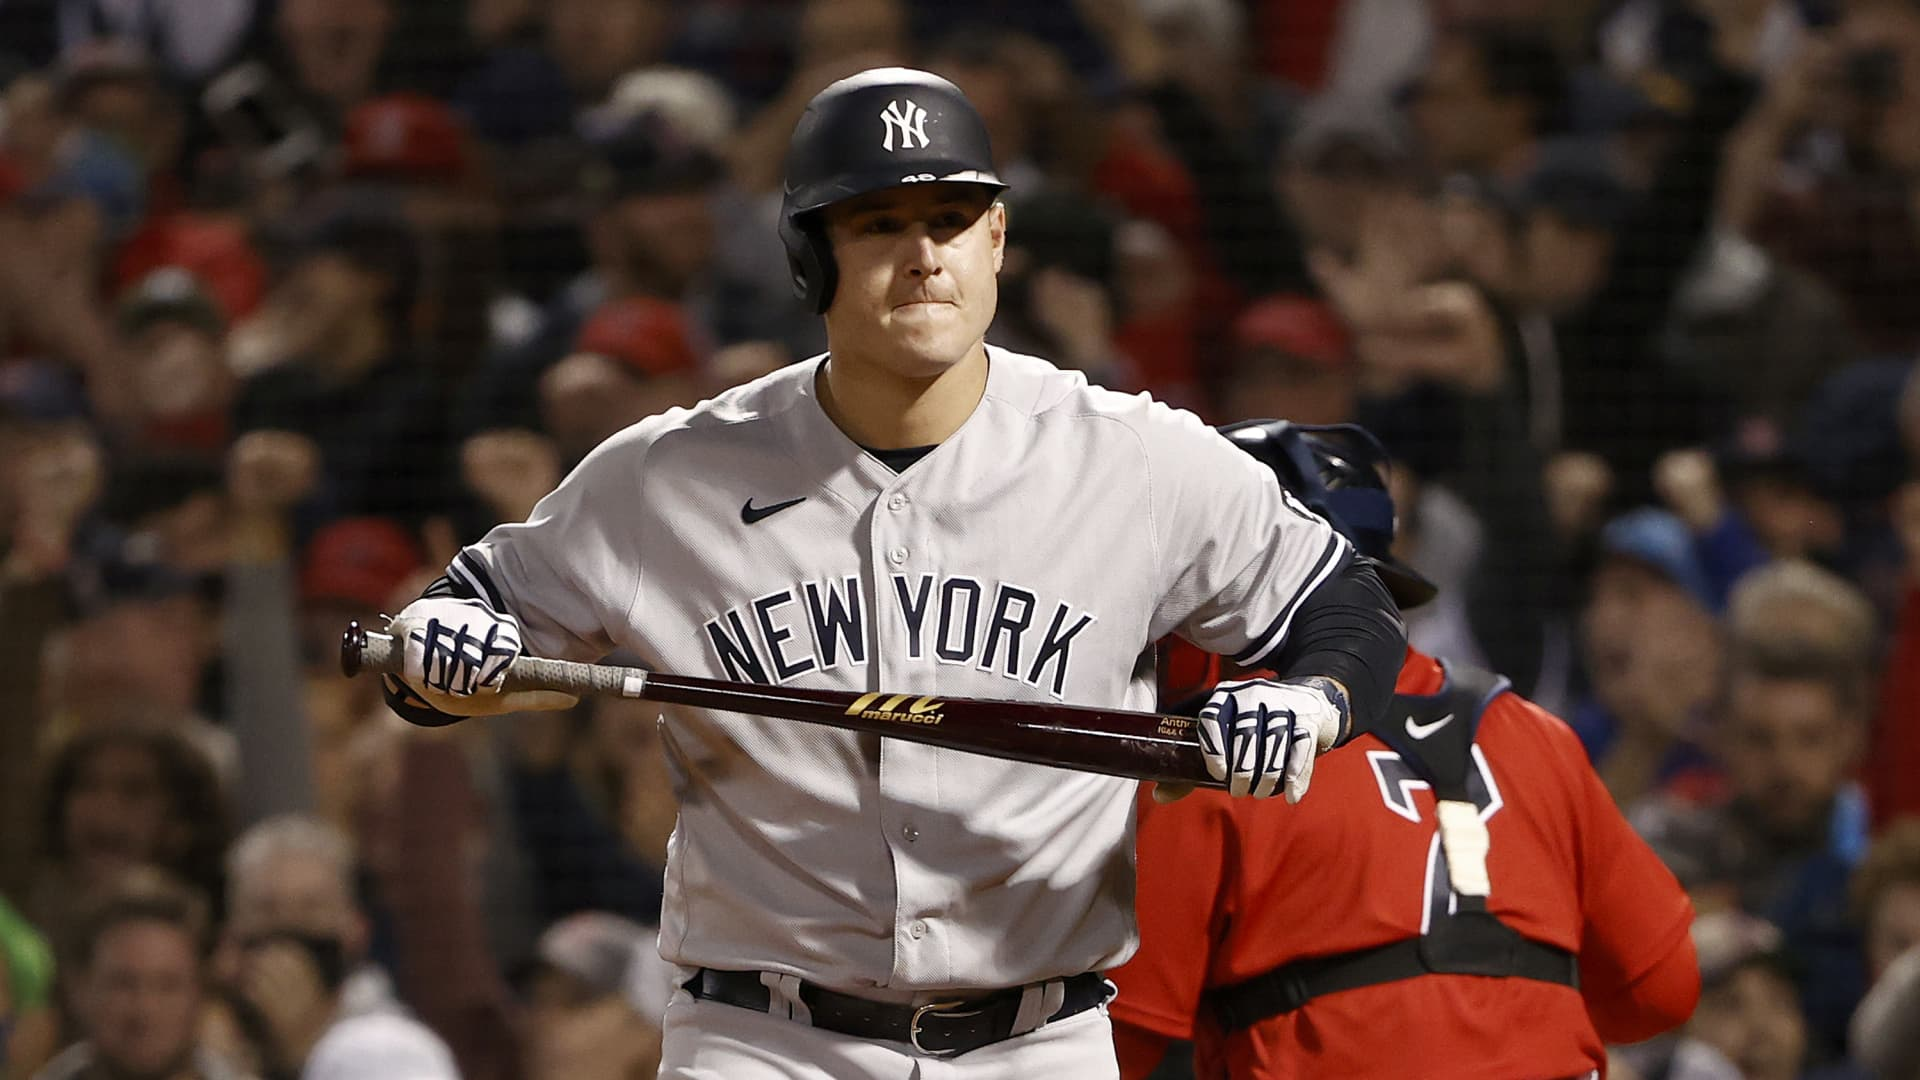 Anthony Rizzo #48 of the New York Yankees reacts after striking out against the Boston Red Sox eighth inning of the American League Wild Card game at Fenway Park on October 05, 2021 in Boston, Massachusetts.